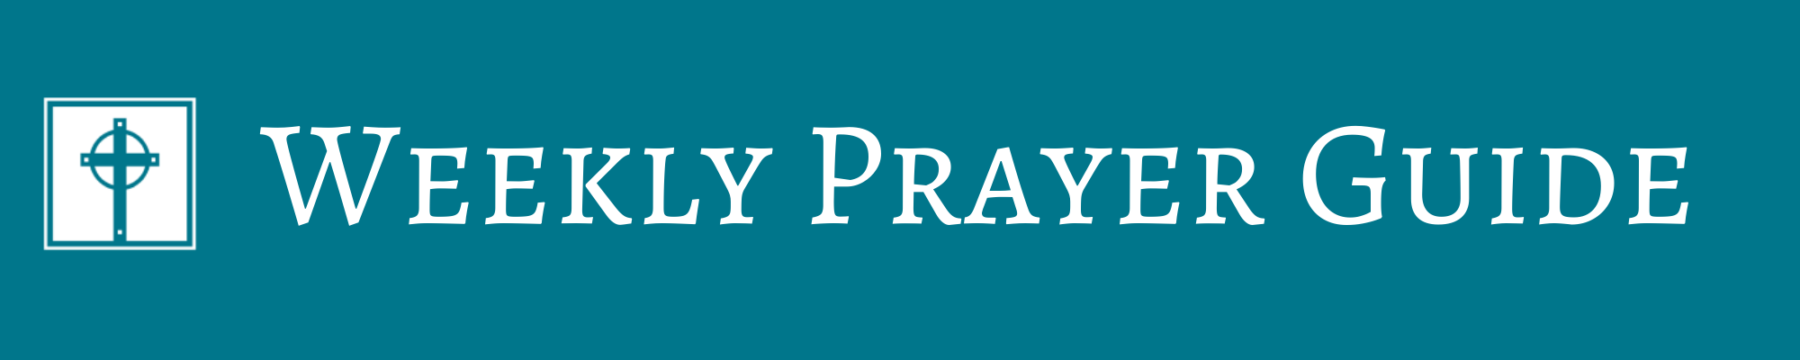 2020-0402 weekly prayer guide graphic